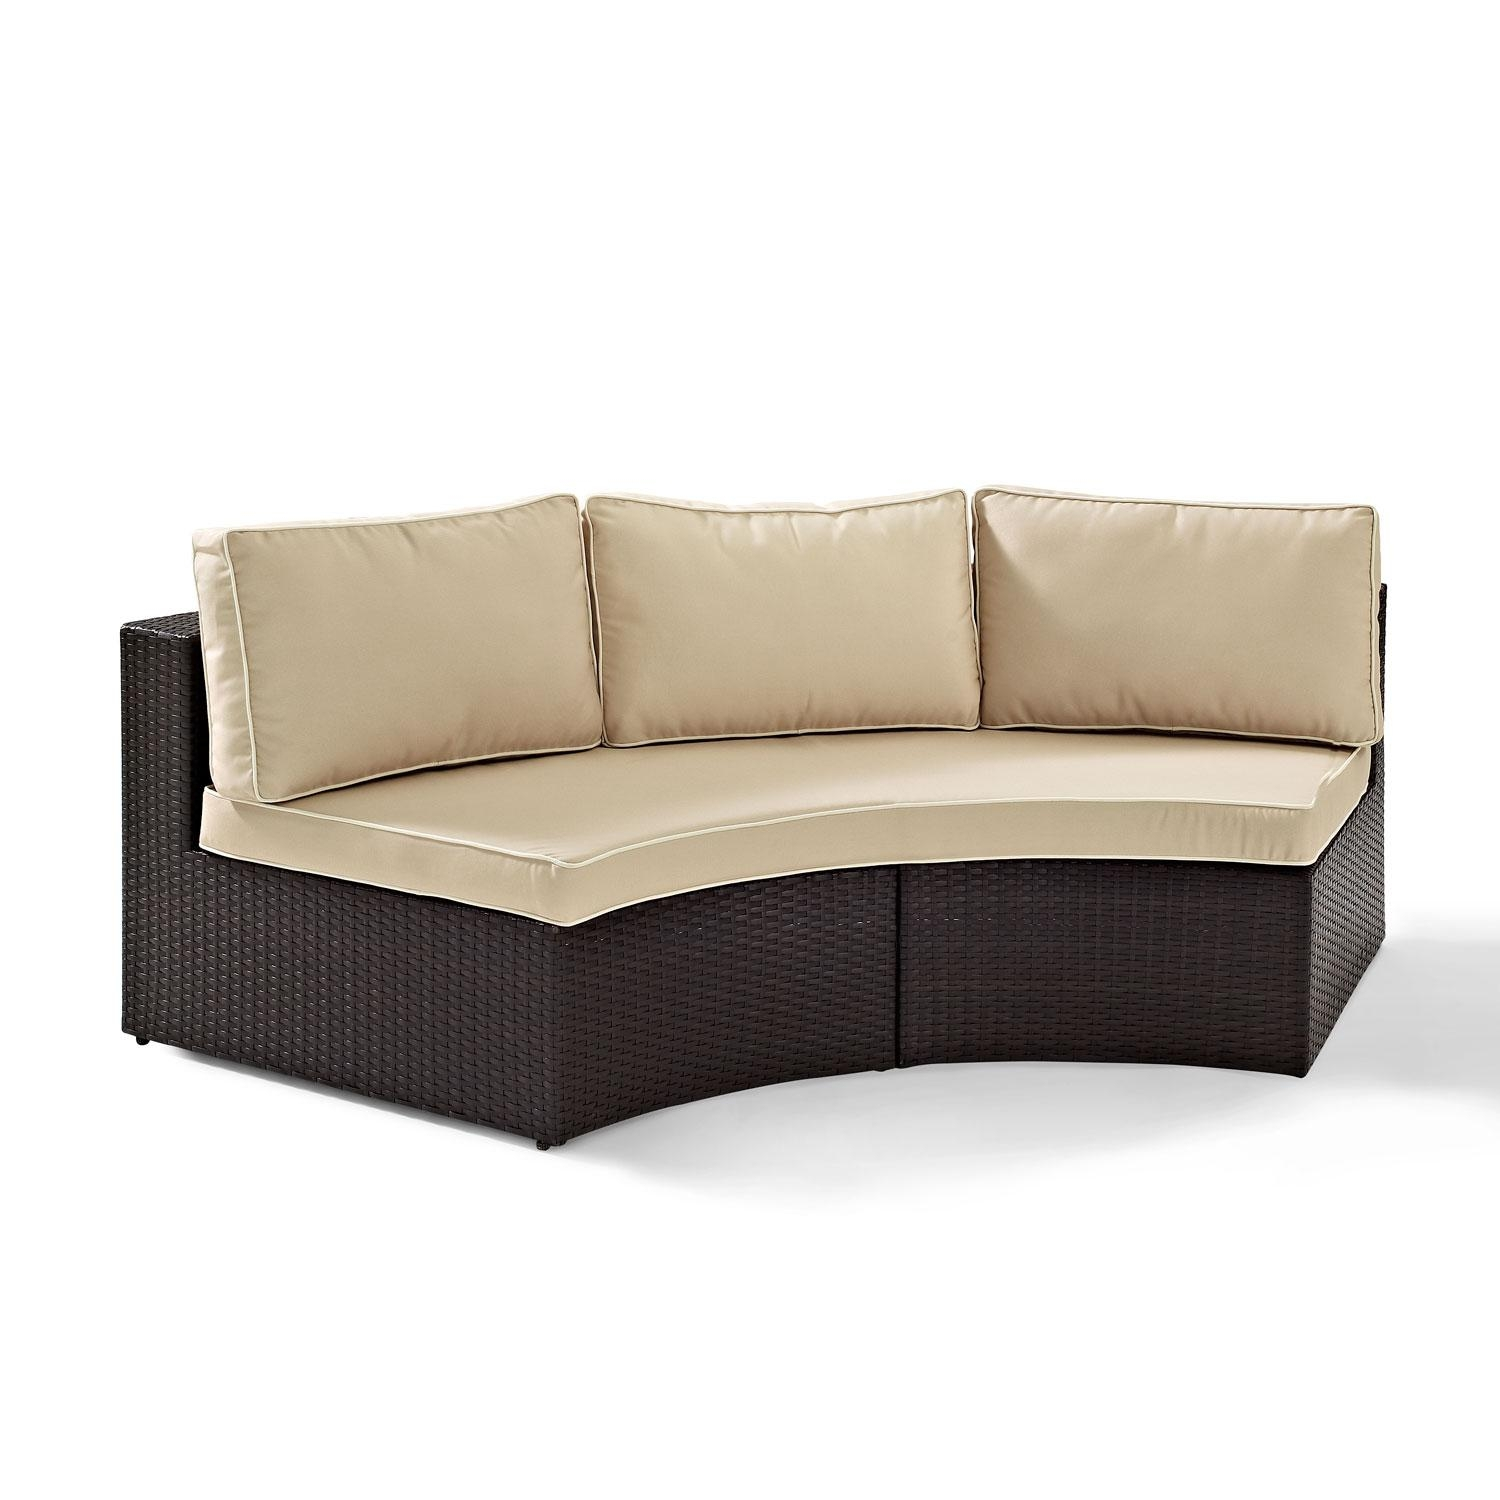 Catalina Outdoor Wicker Round Sectional Sofa With Sand Cushions With Regard To Round Sectional Sofa Bed (Image 3 of 20)